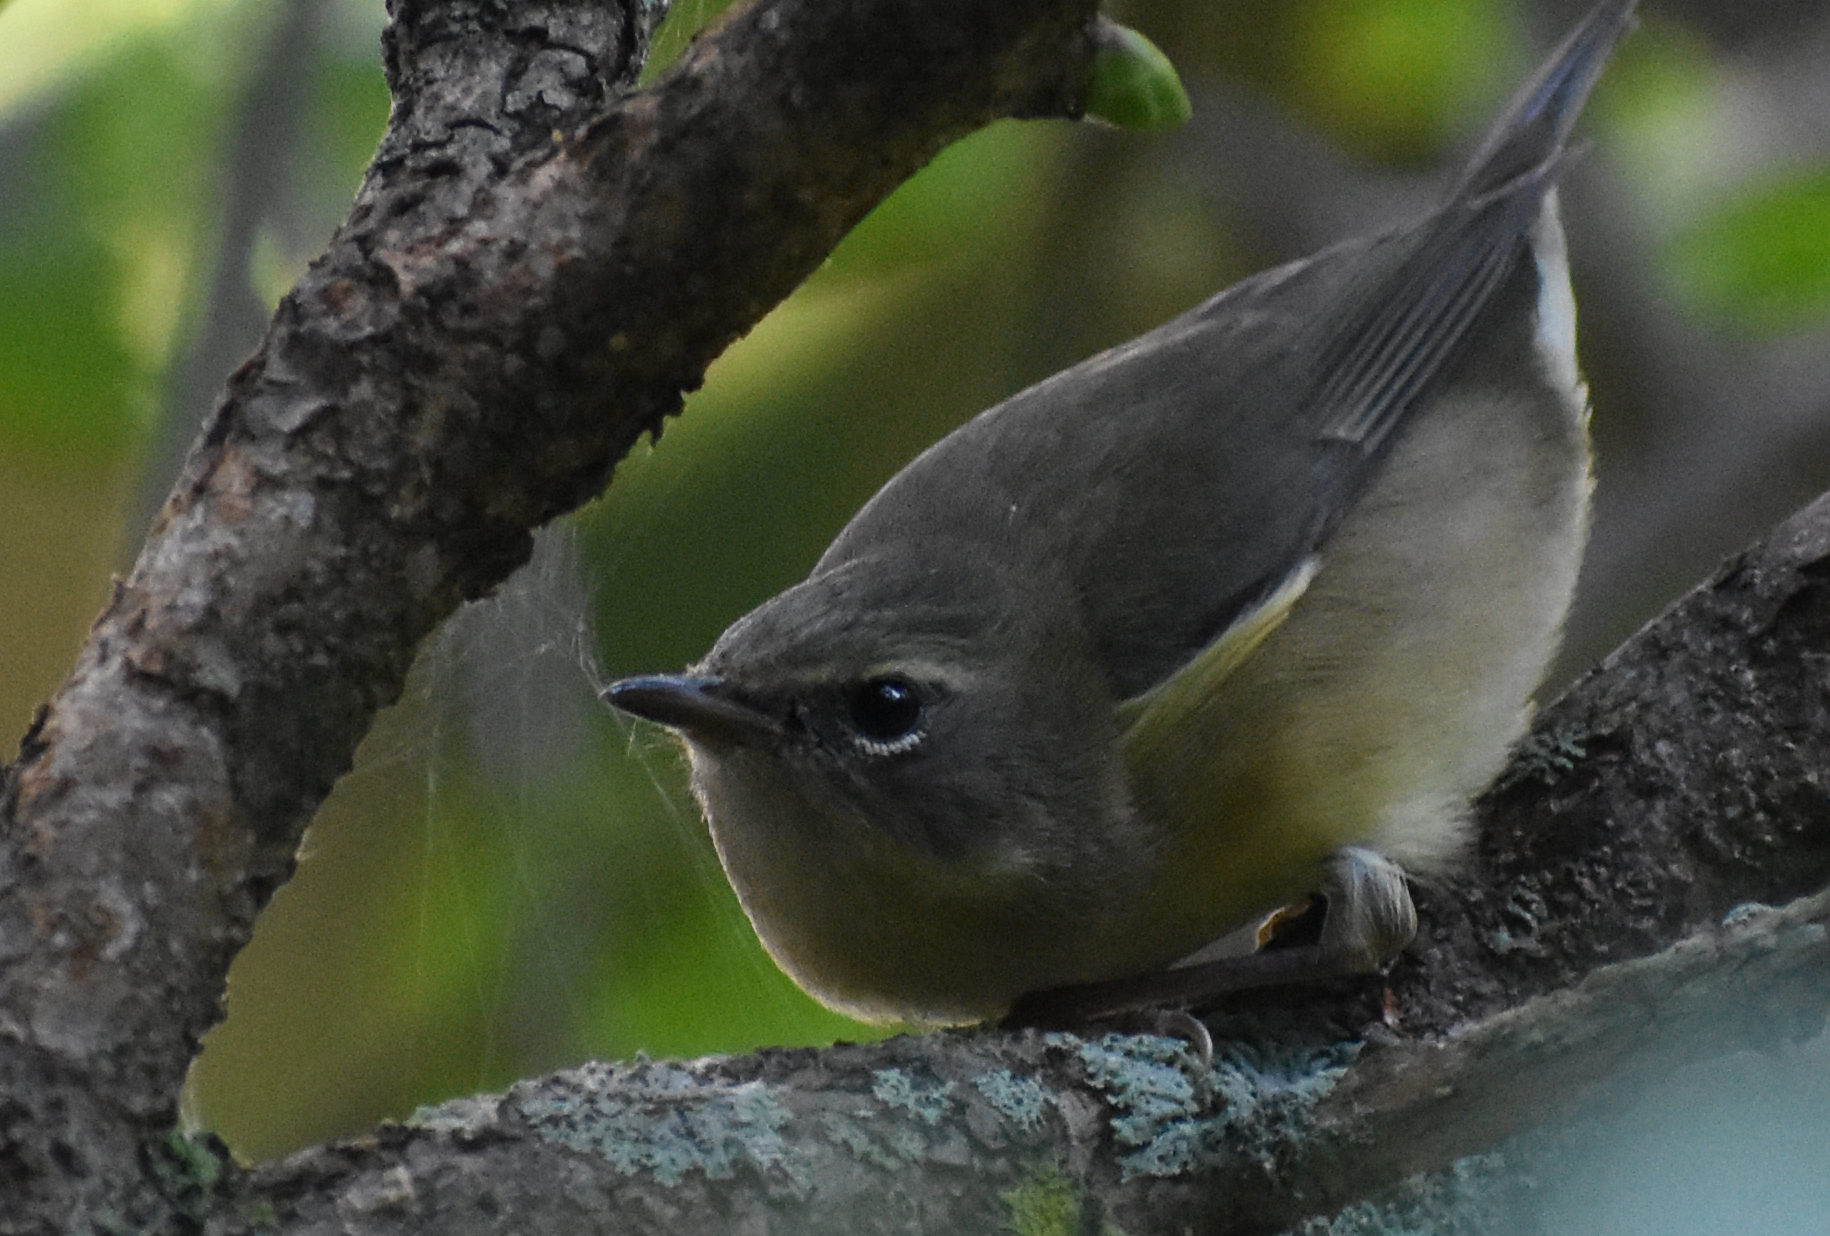 Black-Throated Blue Warbler raiding a spider web